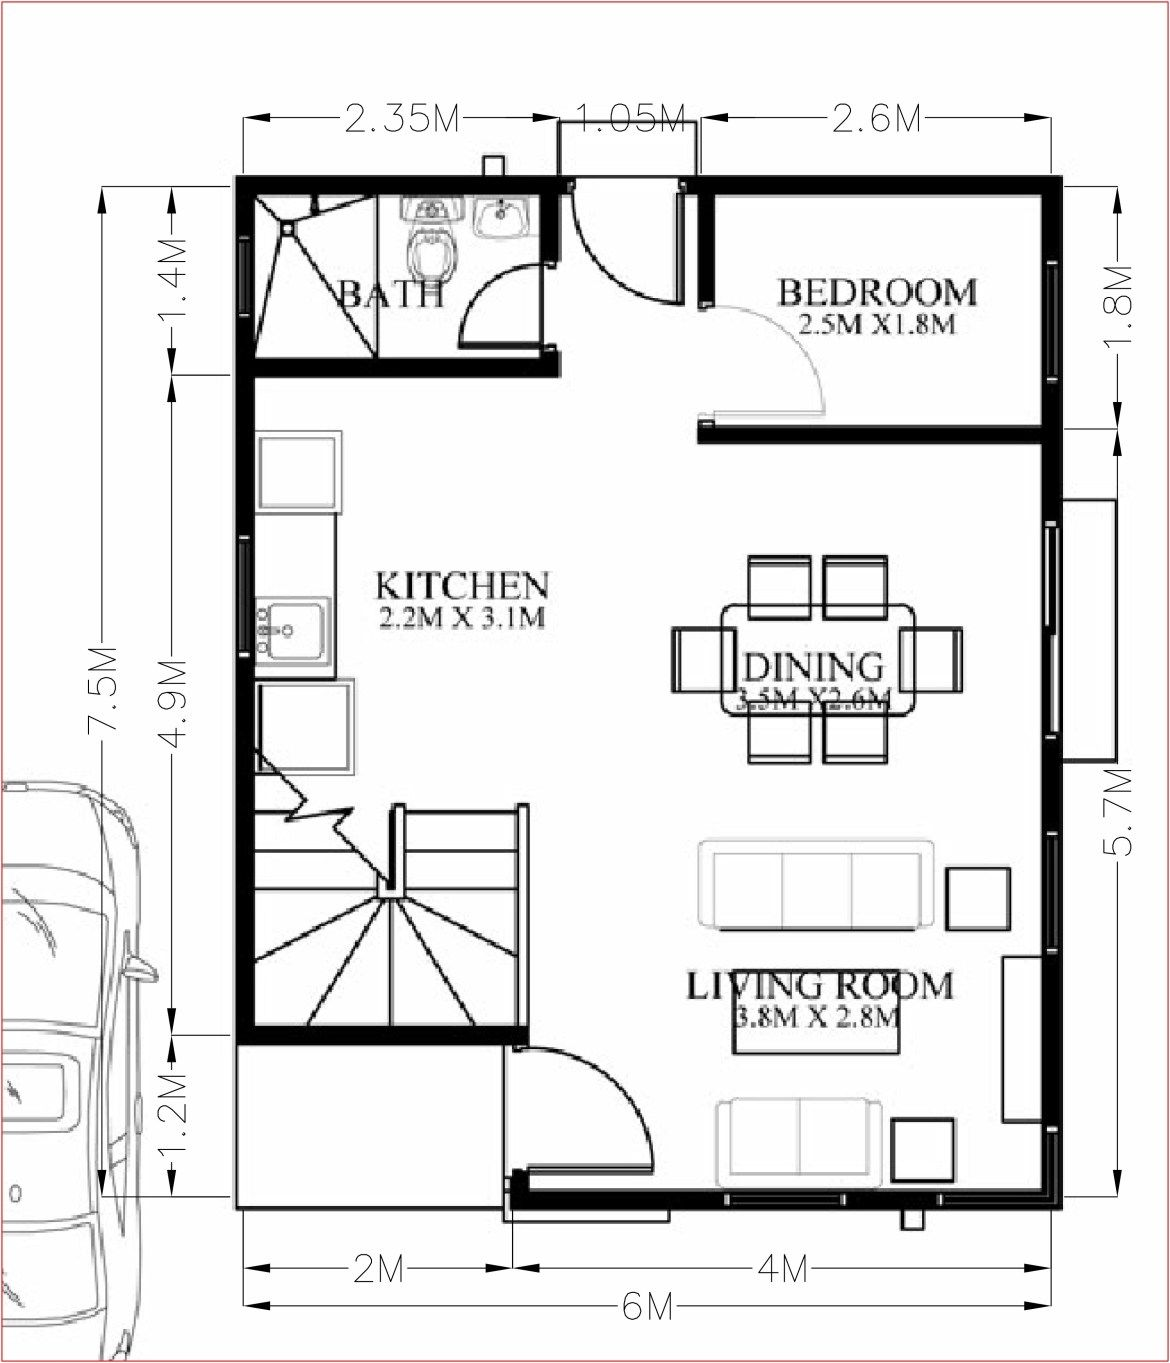 Small Home Design Plan 6x7 5m With 4 Bedrooms Home Planssearch Small House Design Home Design Floor Plans Home Design Plan